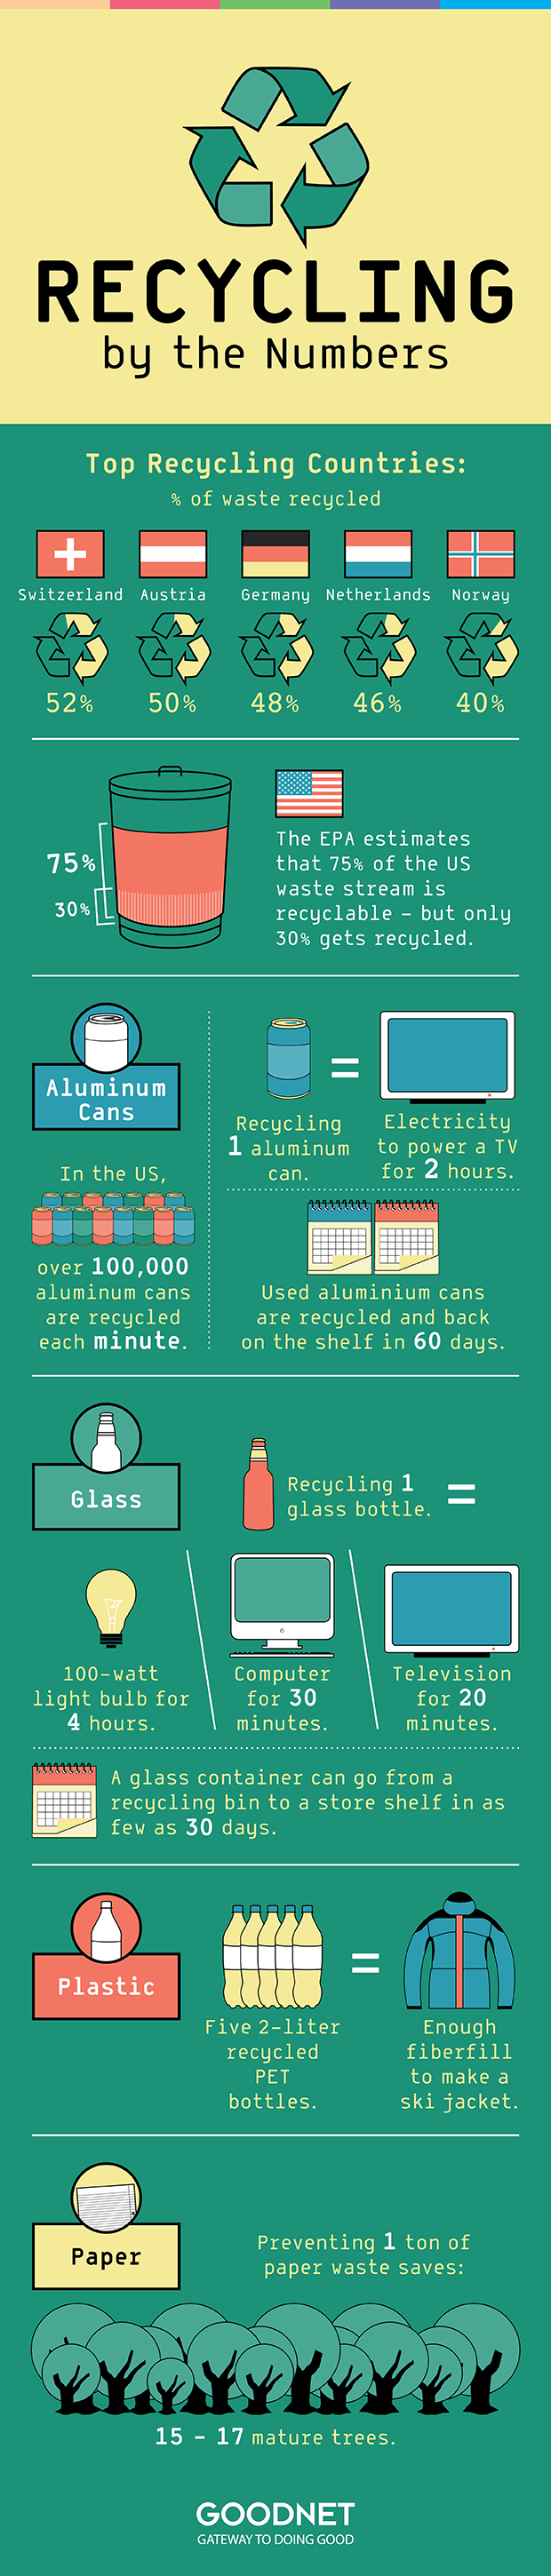 Recycling by the Numbers - infographic: top recycling countries - Switzerland (52% of waste recycled), Austria (50%), Germany (48%), Netherlands (46%), Norway (40%). The EPA estimates that 75% of the US waste stream is recyclable - but only 30% gets recycled. In the US, over 100,000 aluminium cans are recycled each minute. Recycling 1 aluminium can generates electricity to power a TV for 2 hours. Used Aluminium cans are recycled and back on the shelf in 60 days. Recycling 1 glass bottle generates enough electricity to power a 100-watt light bulb for 4 hours, a computer for 30 minutes or a television for 20 minutes. A glass container can go from a recycling bin to a store shelf in as few as 30 days. Five 2-liter recycled PET bottles contain enough fiberfill to make a ski jacket. Preventing 1 ton of paper waste saves 15-17 mature trees.